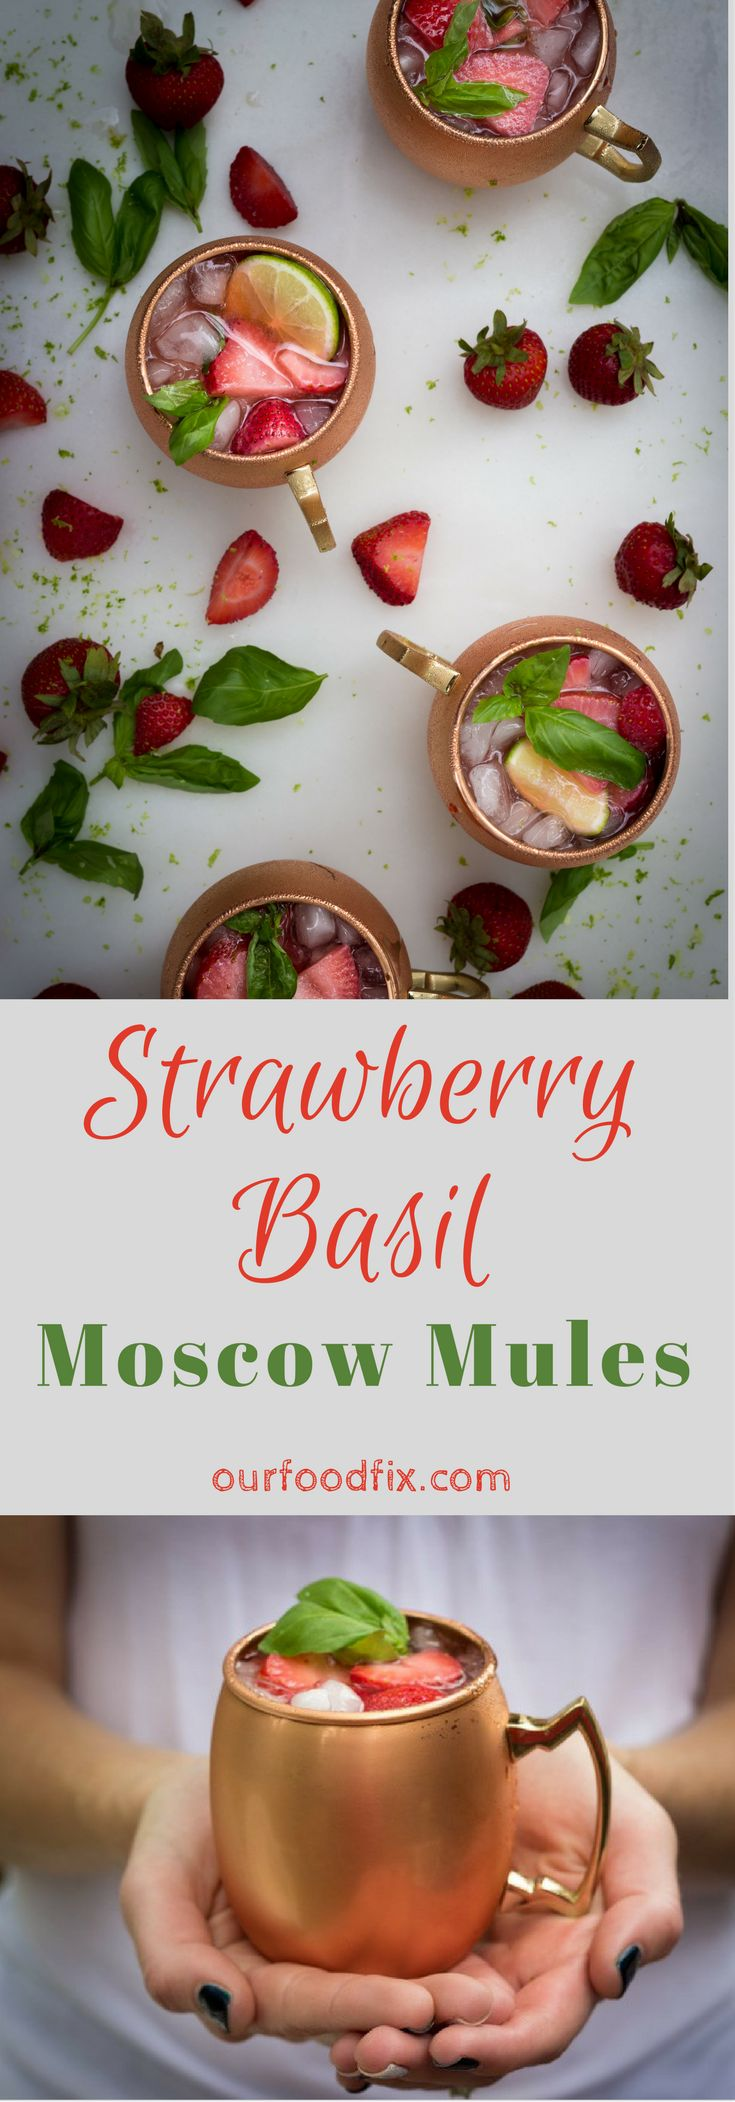 Moscow Mule | Cocktail recipes | Summer drinks | Summer beverages | Party drinks | Independence Day | BBQ drinks | Pitcher drinks | Vodka drinks | Strawberry recipes | Strawberry Basil